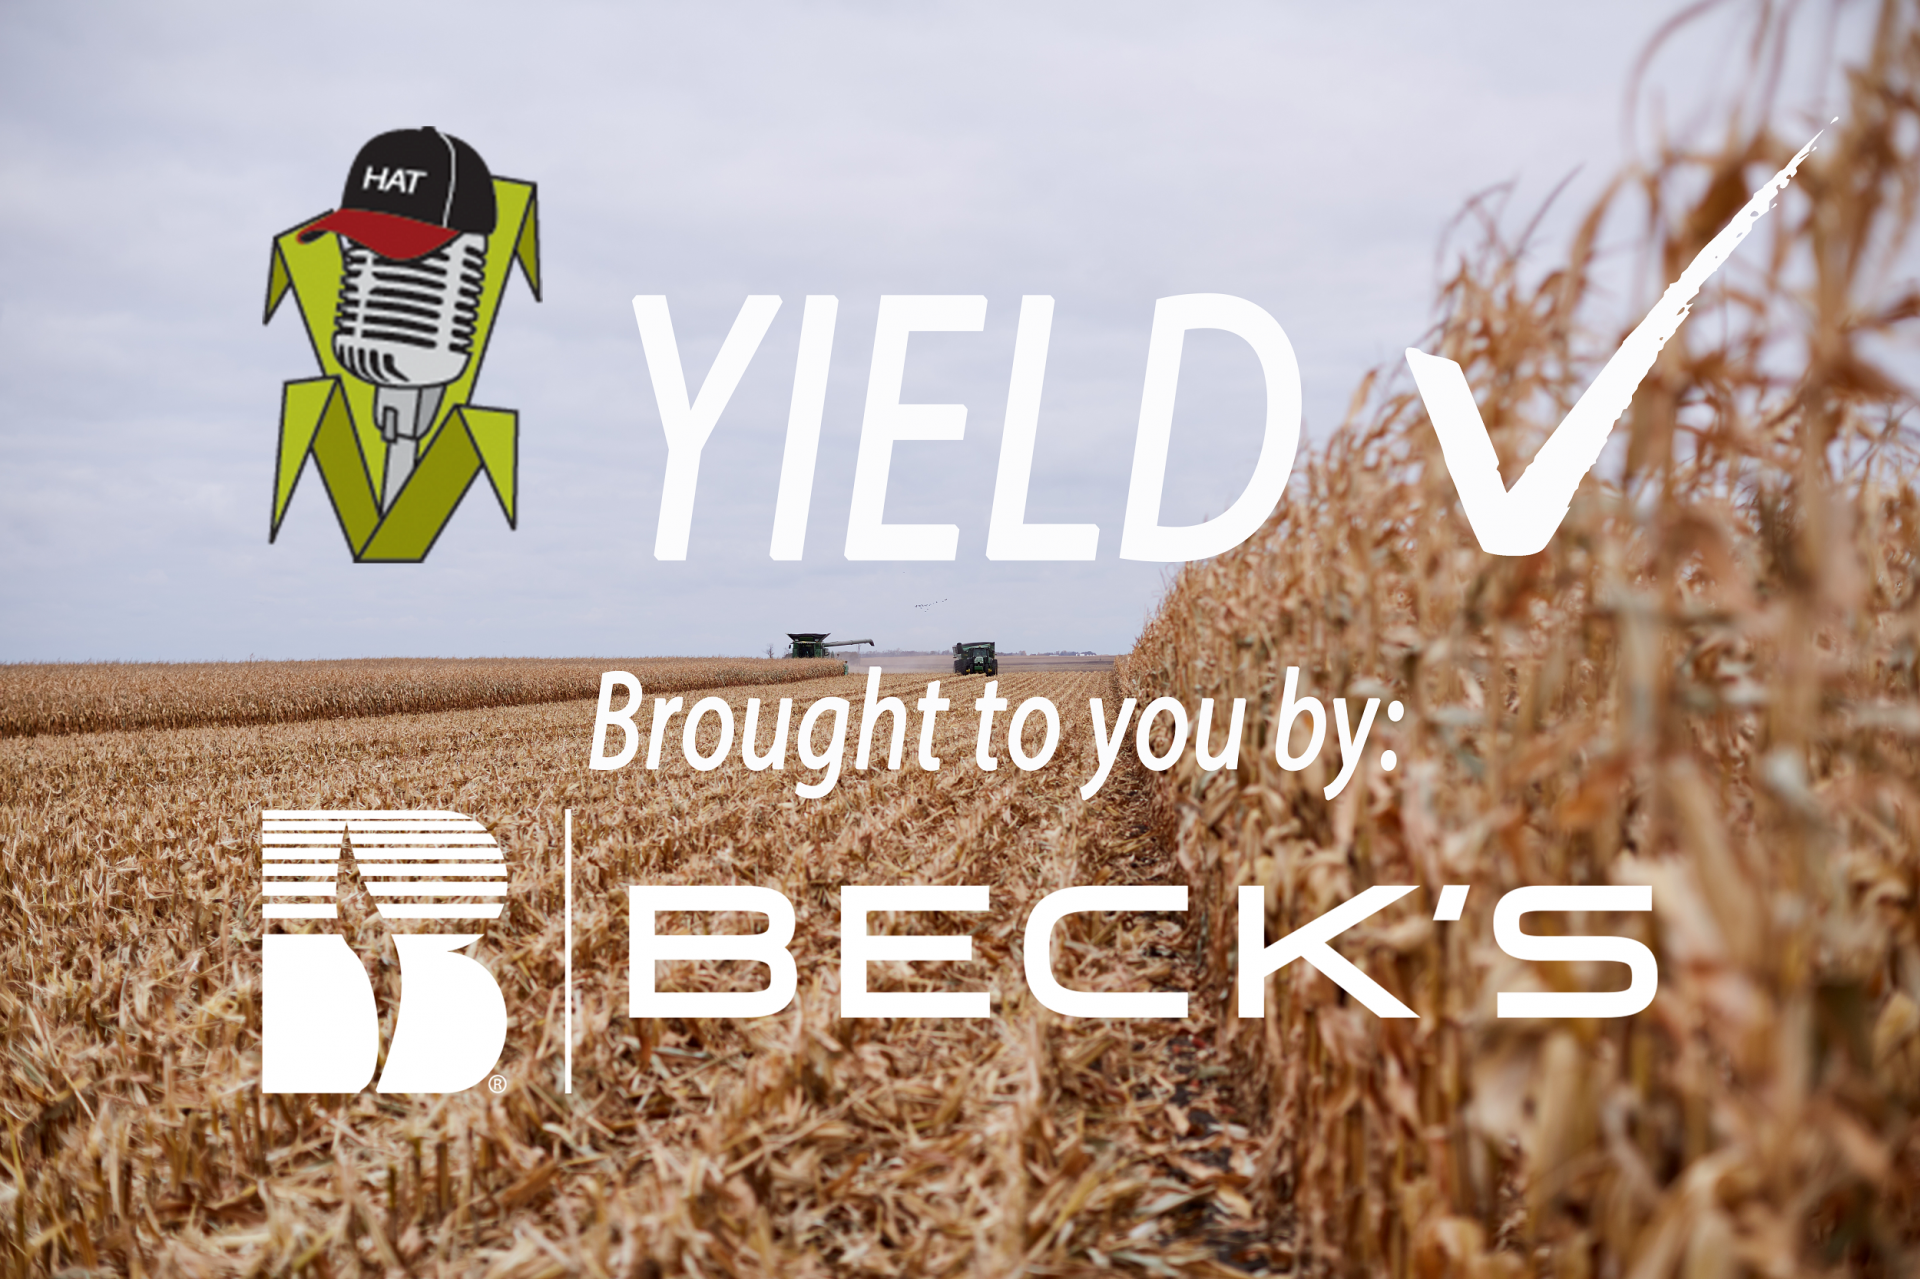 Northern Indiana Soybean Yields Anywhere From Excellent to Underwhelming